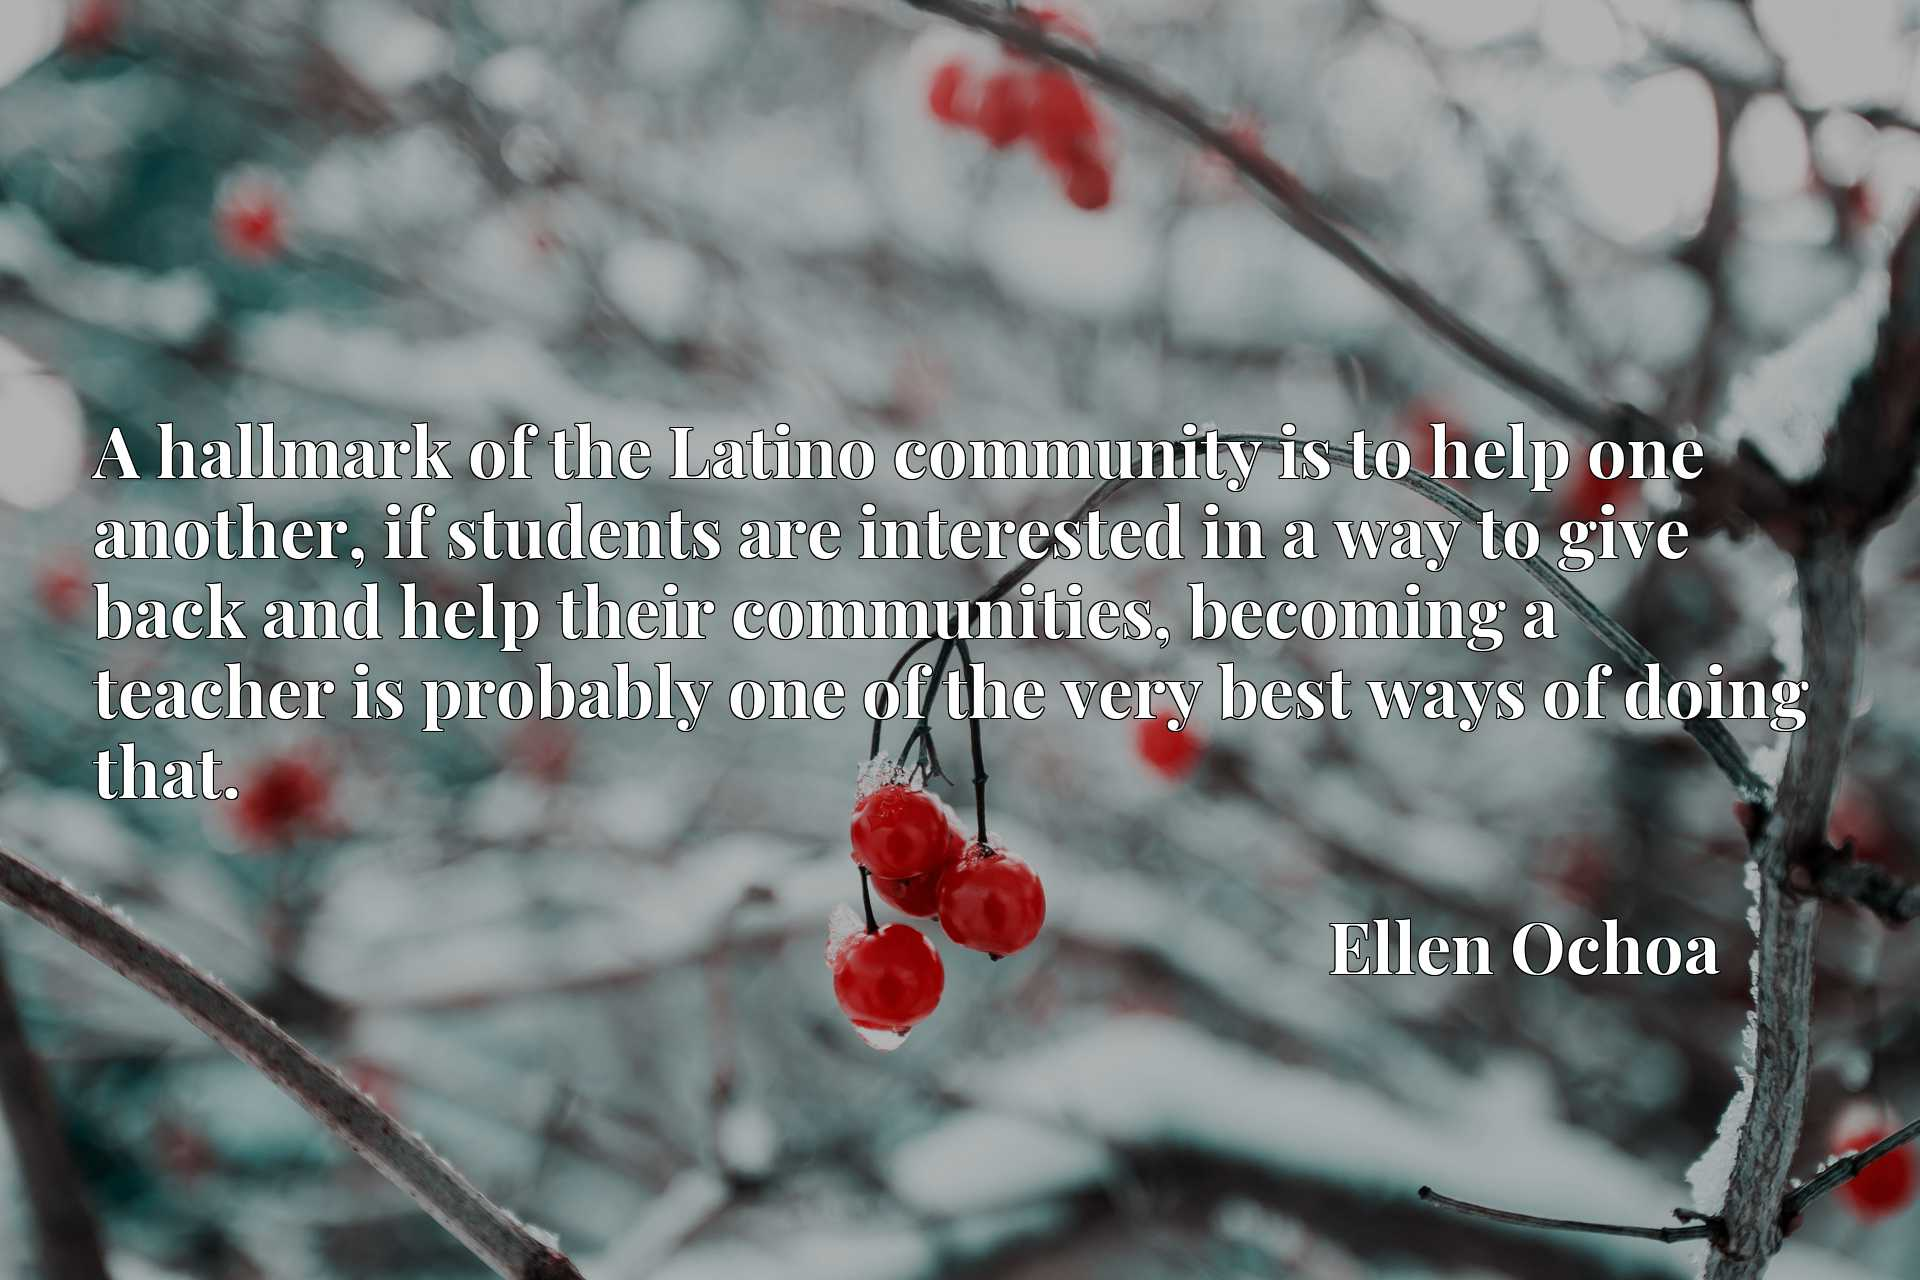 Quote Picture :A hallmark of the Latino community is to help one another, if students are interested in a way to give back and help their communities, becoming a teacher is probably one of the very best ways of doing that.